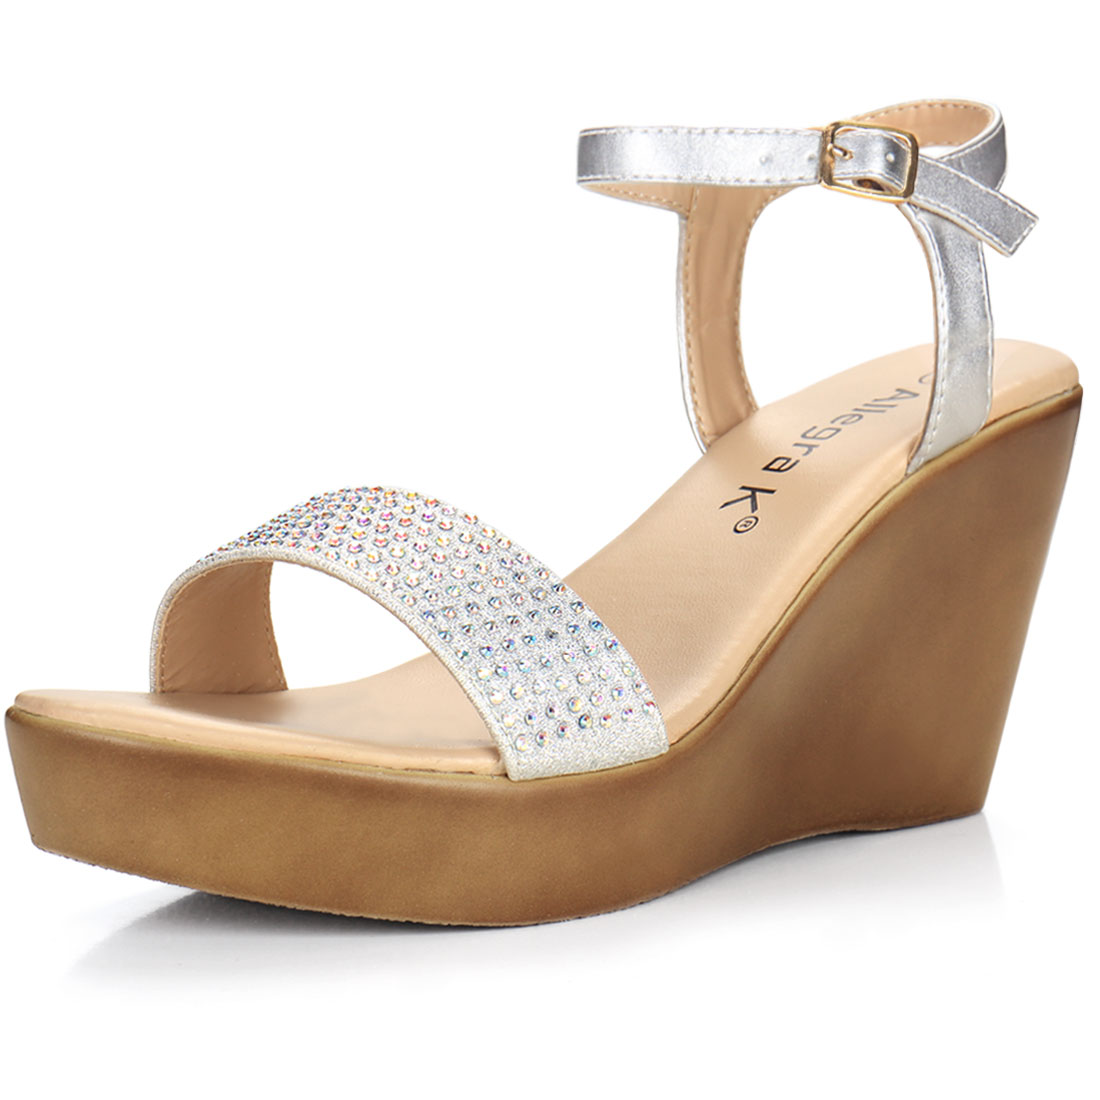 Woman Rhinestones Embellished Open Toe Wedge Sandals Silver US 7